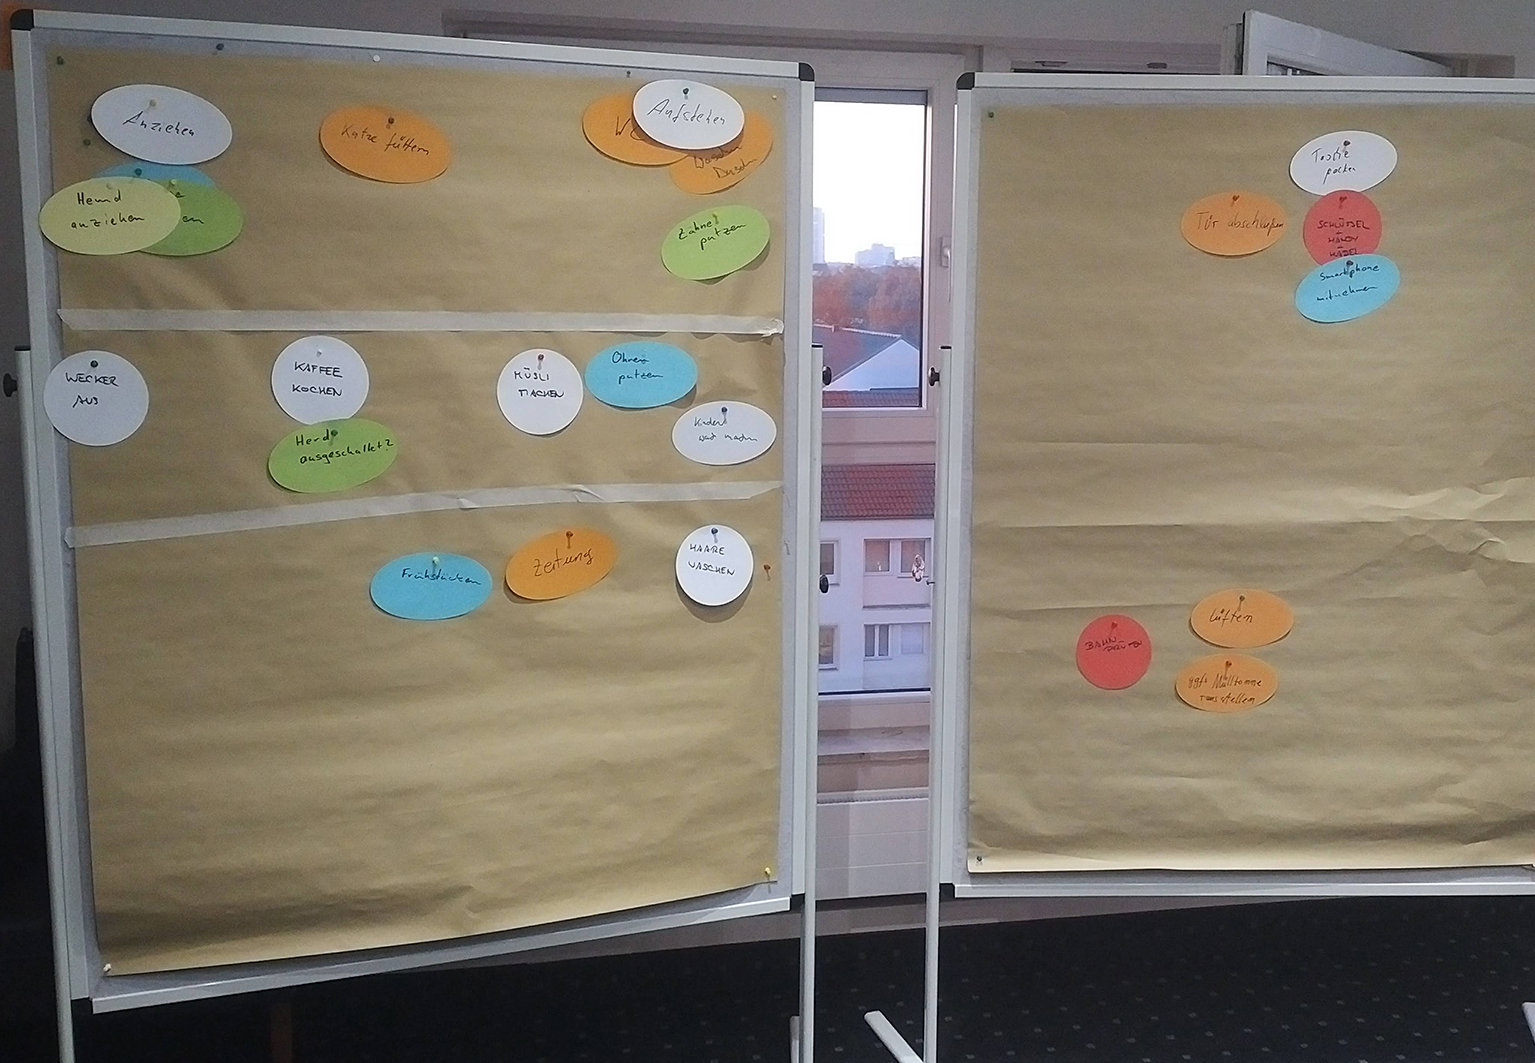 Agile Methoden Story Map